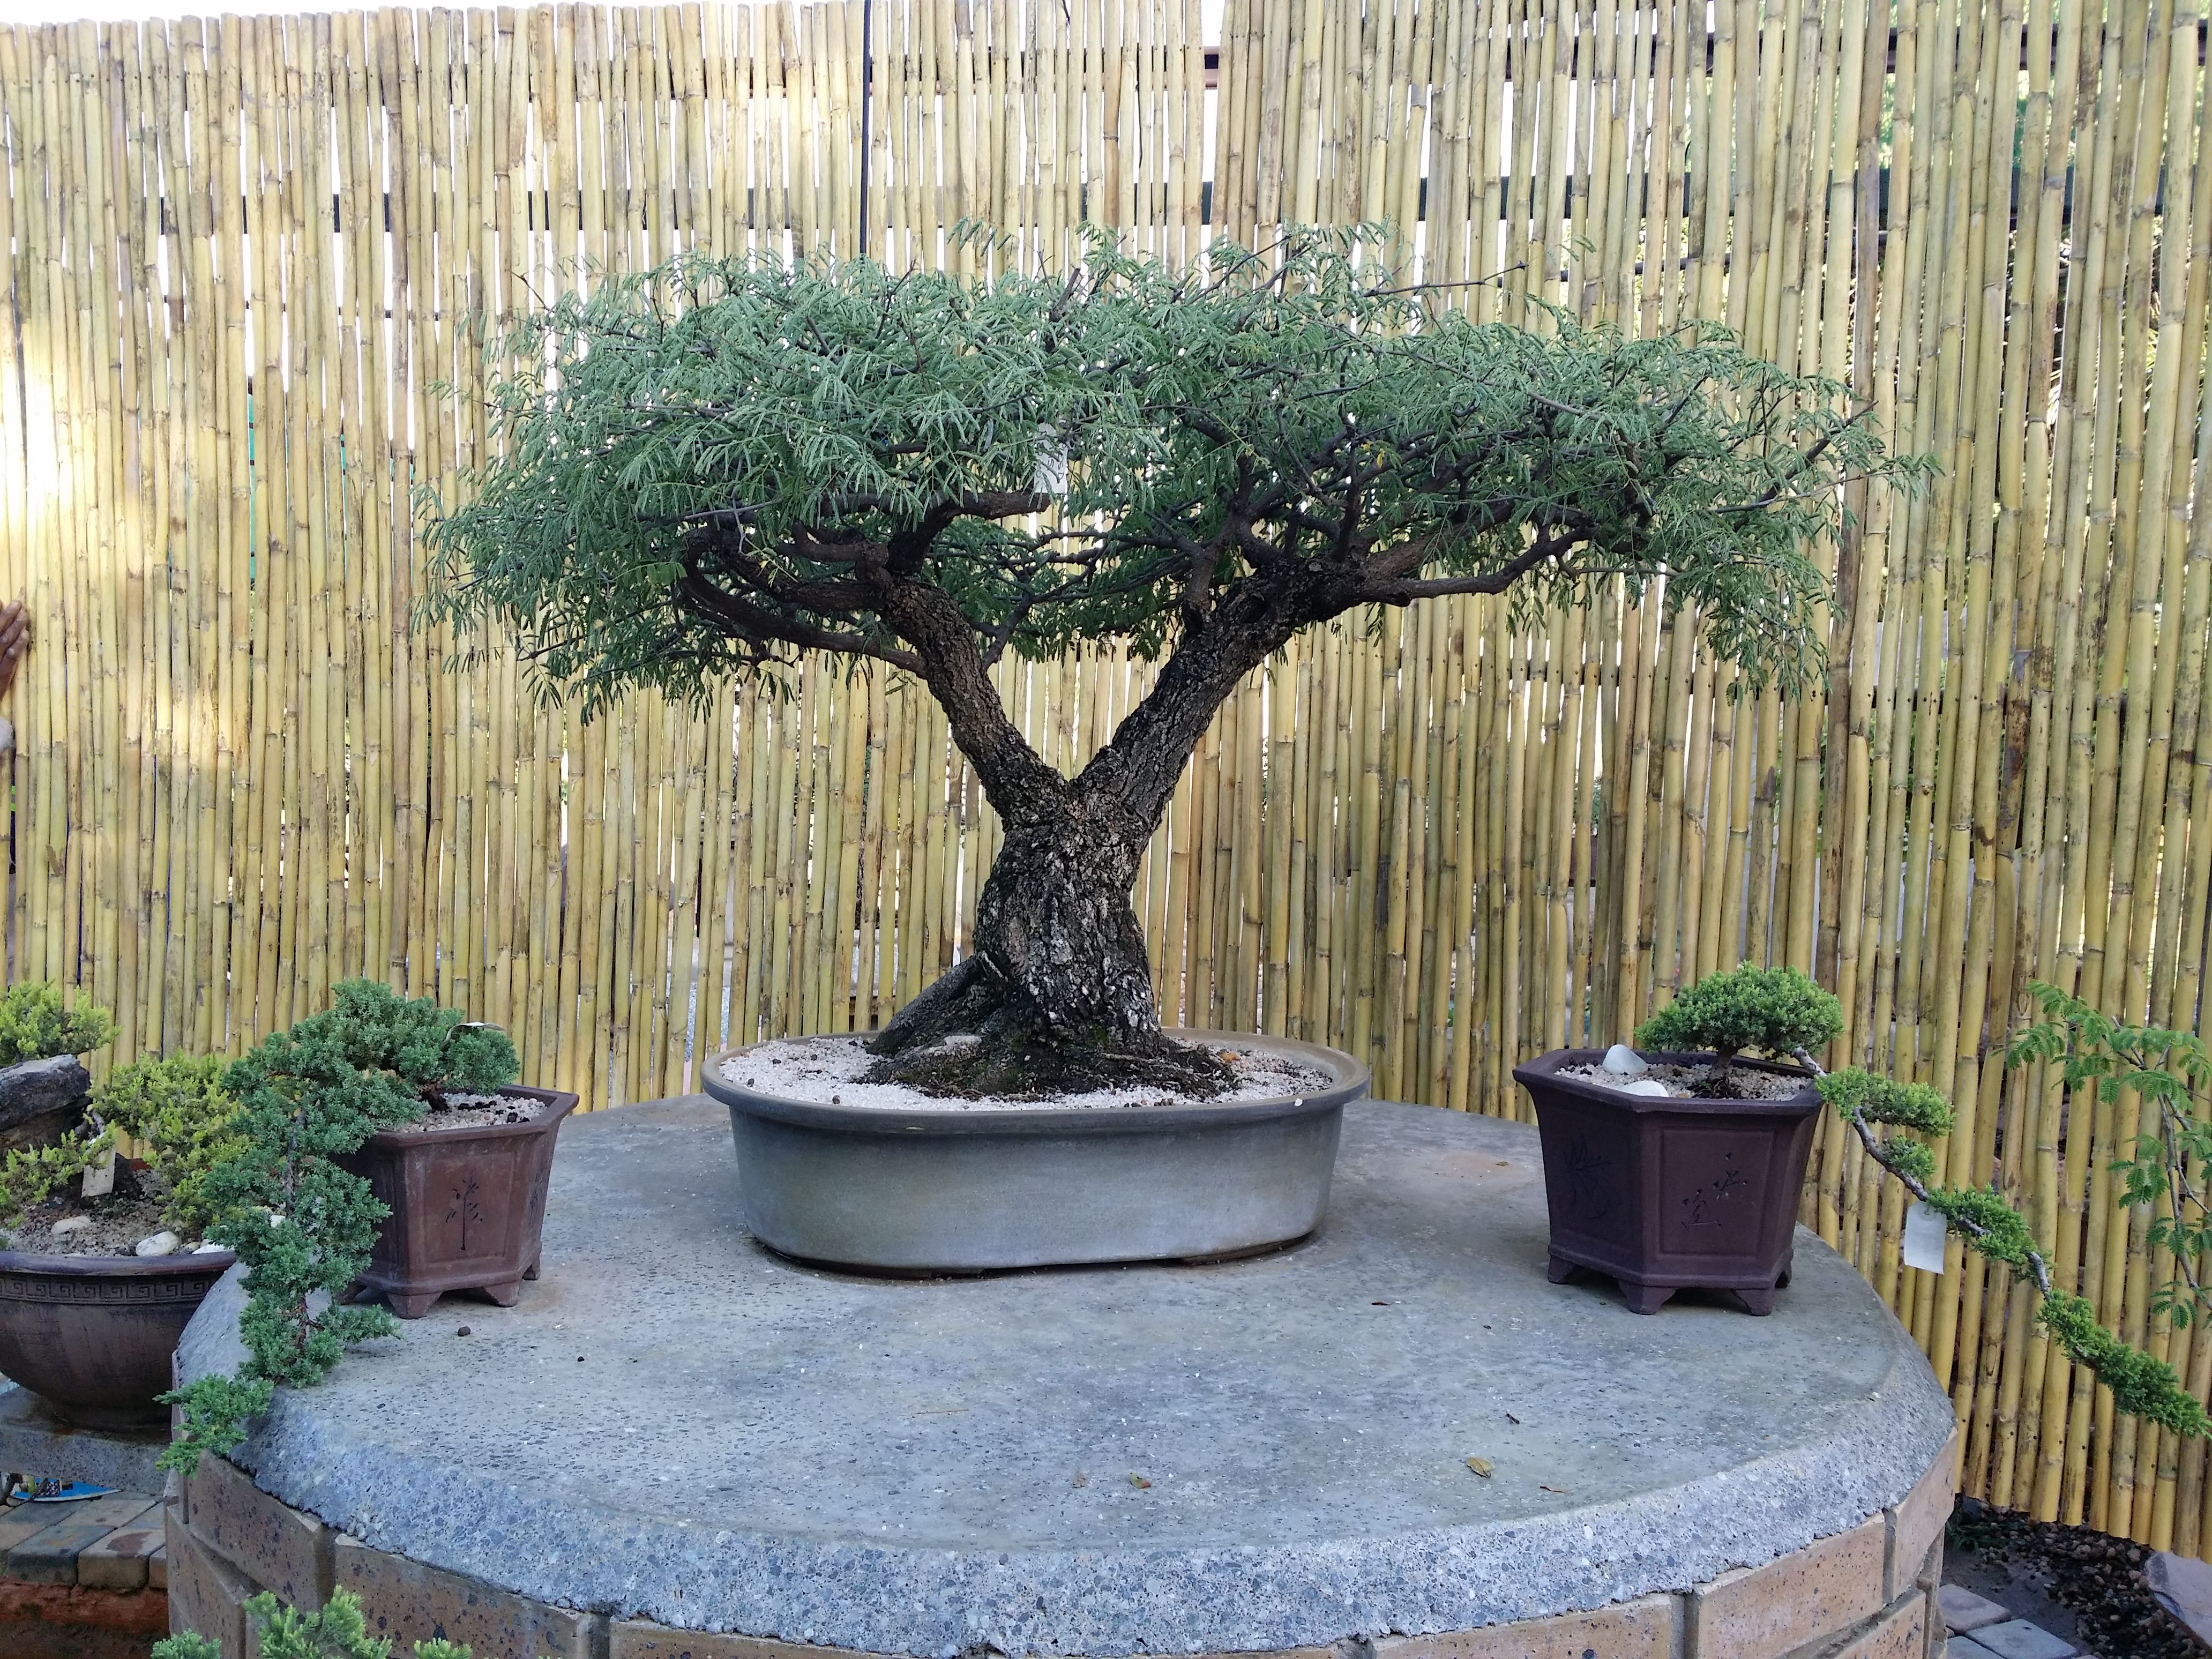 96 Years Old Bonsai Black Monkey Thorn Tree Grown From Seed As A Bonsai Many People Take Cuttings From Large Trees And Pass Bonsai Tree Bonsai Growing Seeds